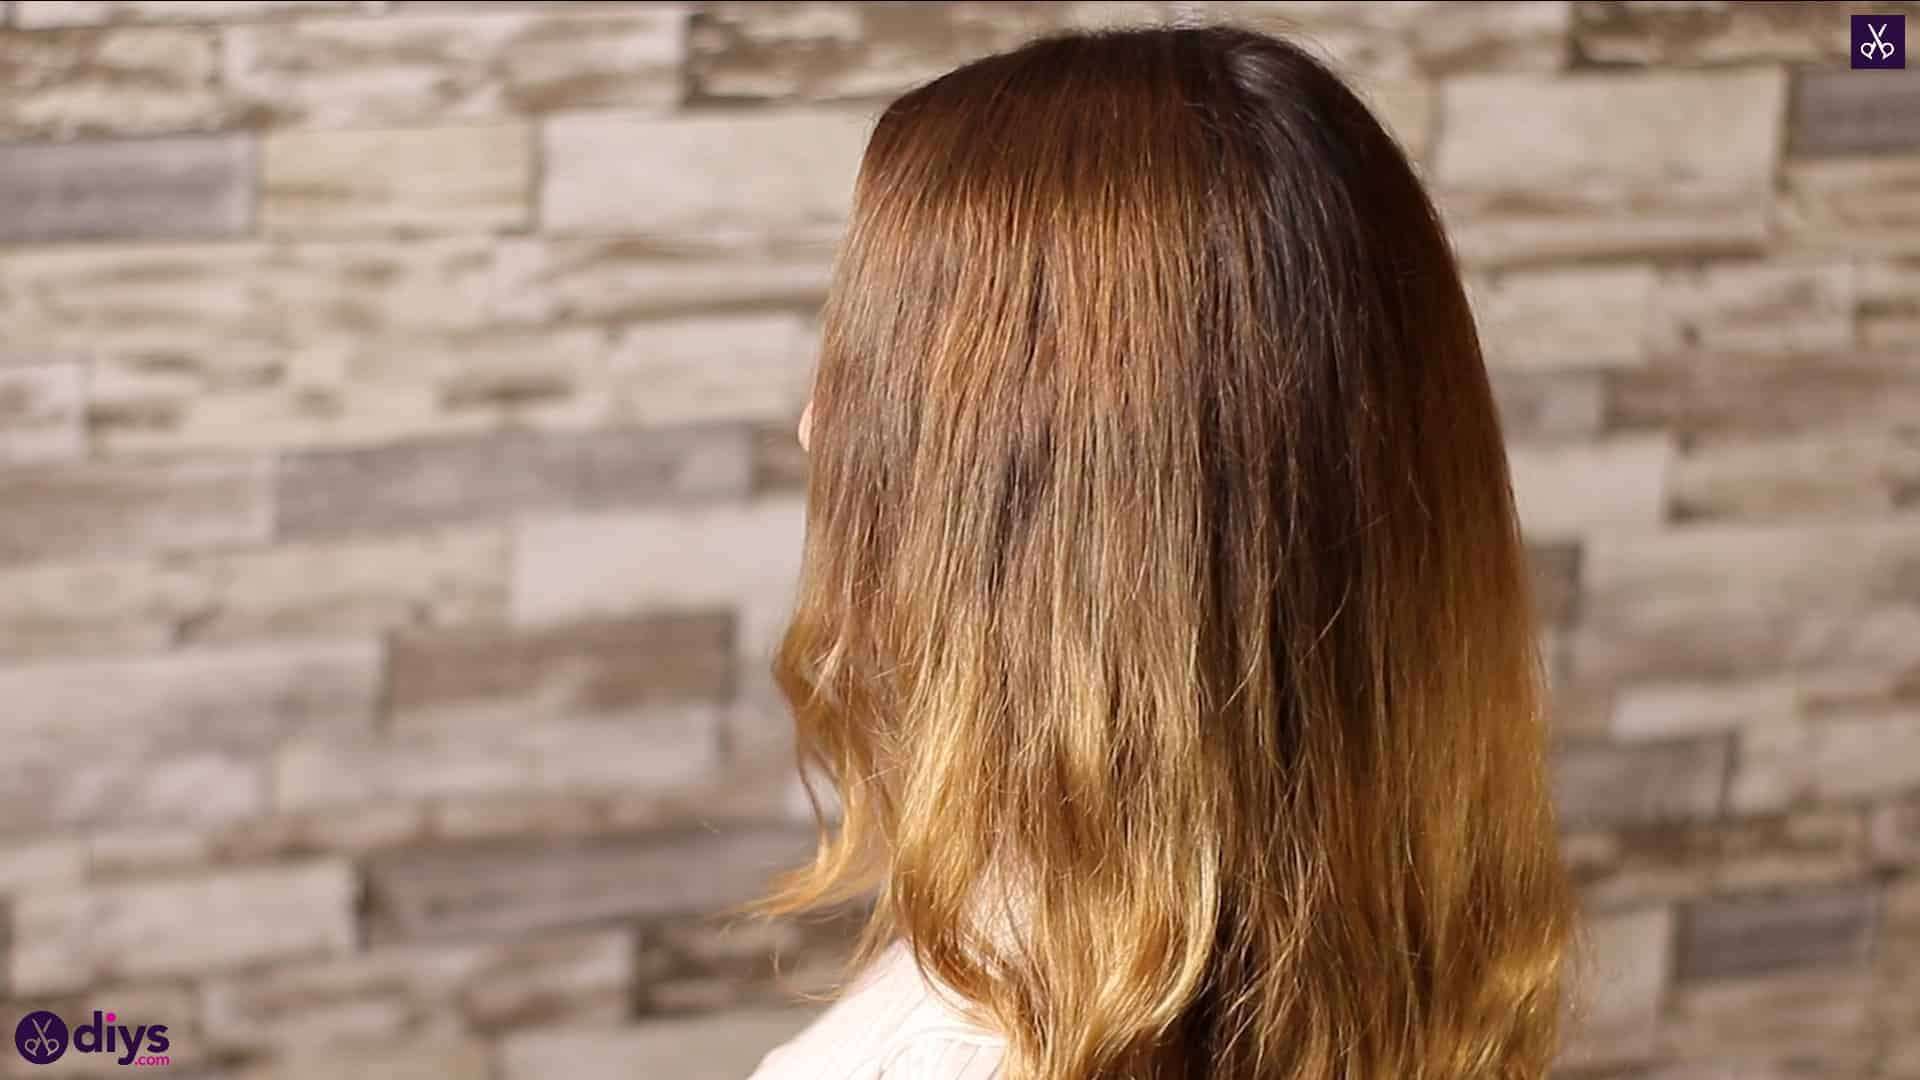 Half up, half down hairstyle for spring7